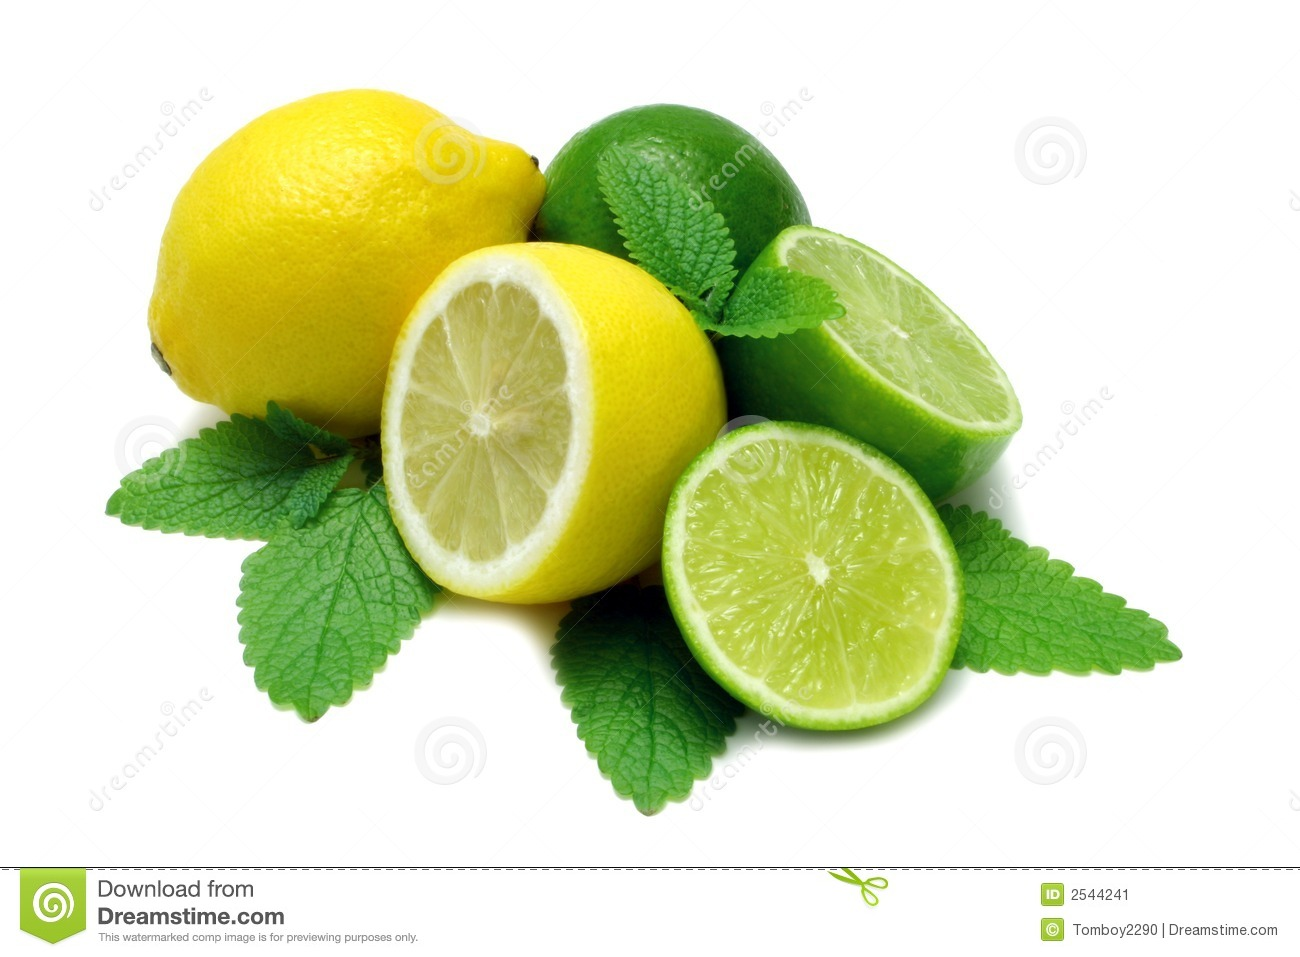 Lemon And Limes Stock Image - Image: 2544241